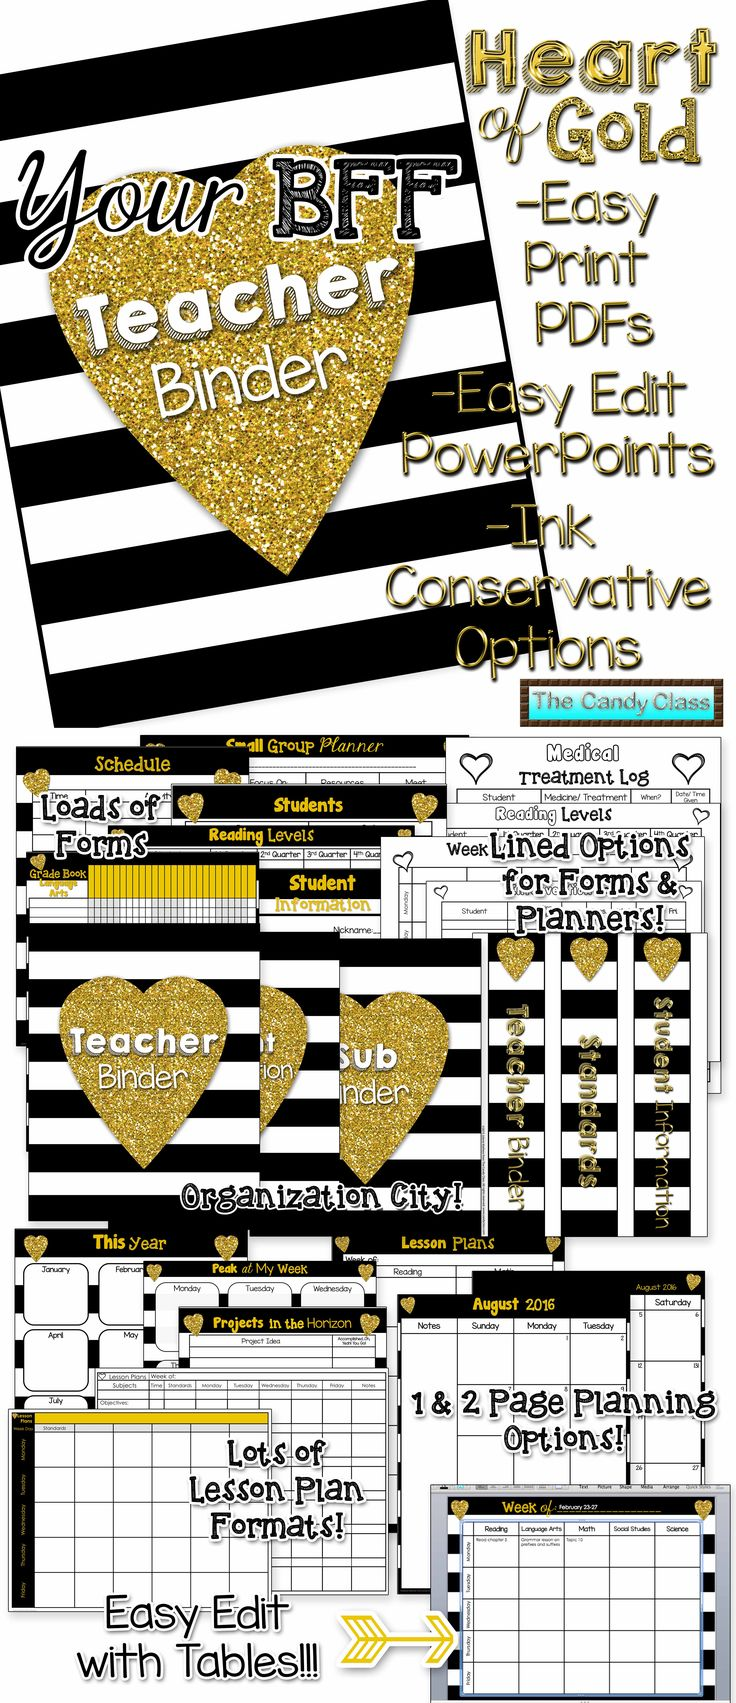 Your new best friend! Very functional with editable tables to make use easy! Blinged out with gold because after all teachers have a heart of gold! Just added: Weekly planners in Excel (there are also planners in PowerPoint and the PDFs) and Common Core checklists for K-6!!! $